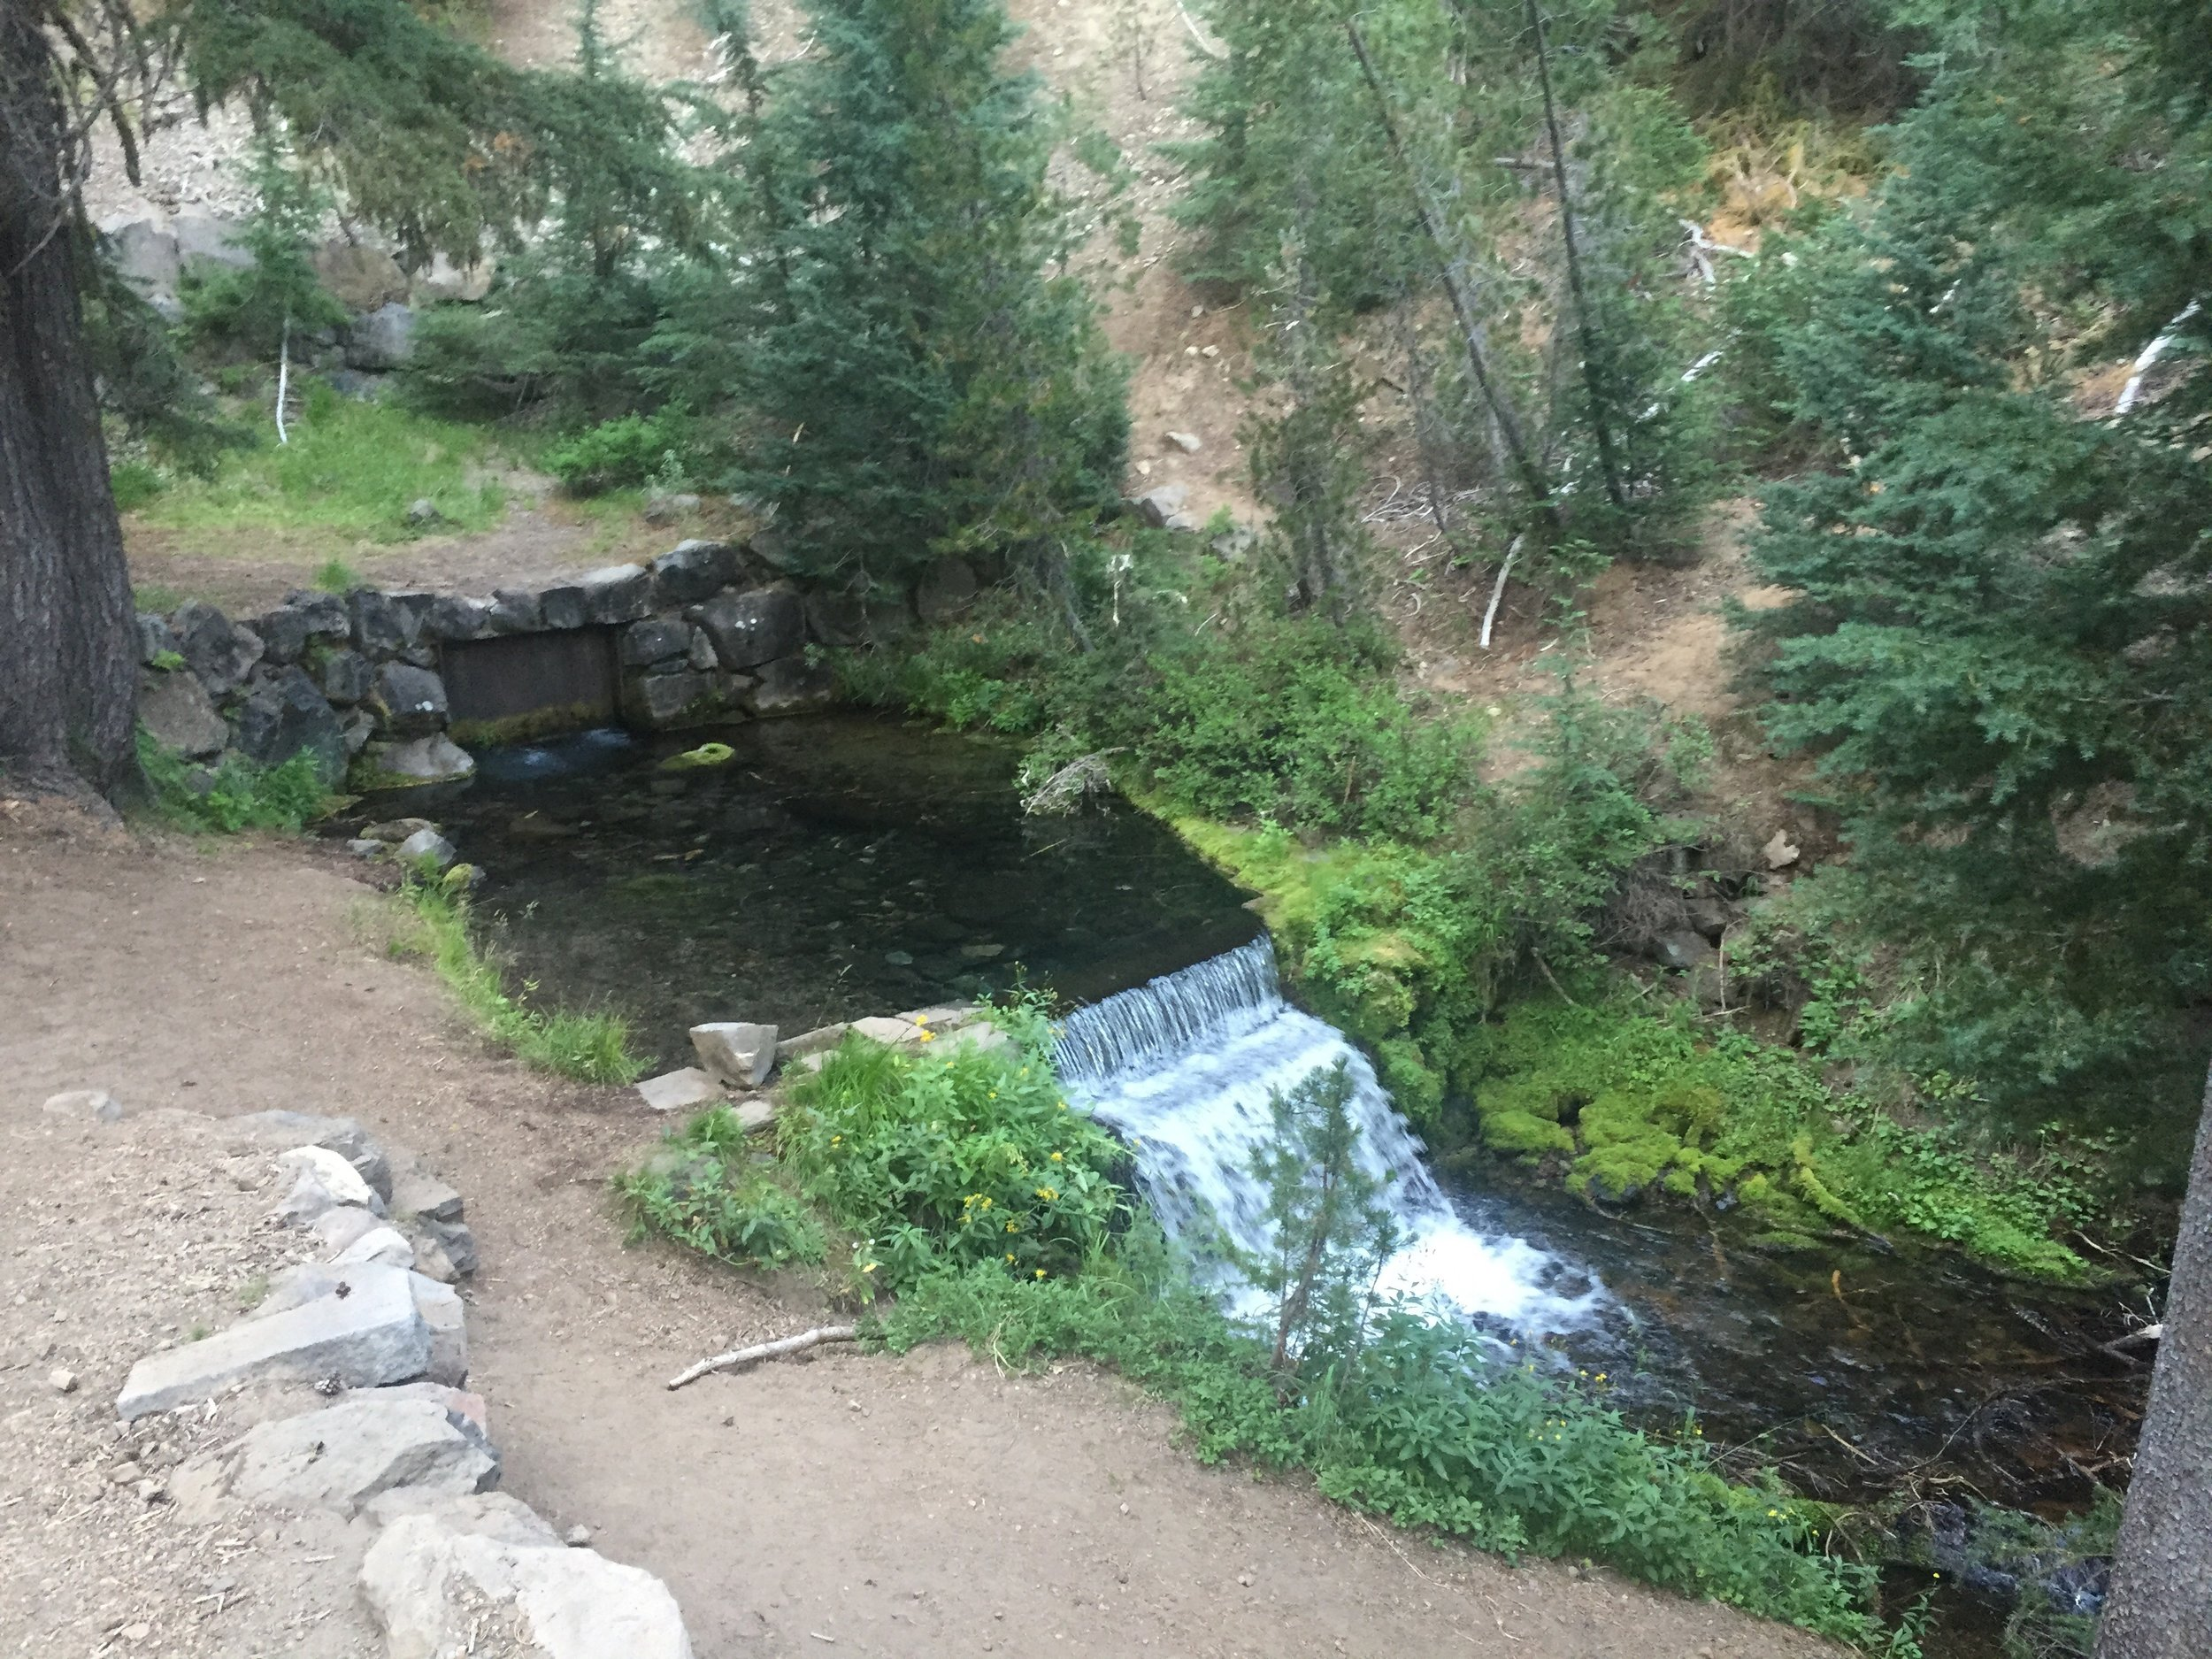 Annie's Spring gushes on the outskirts of Mazama Village south of Crater Lake